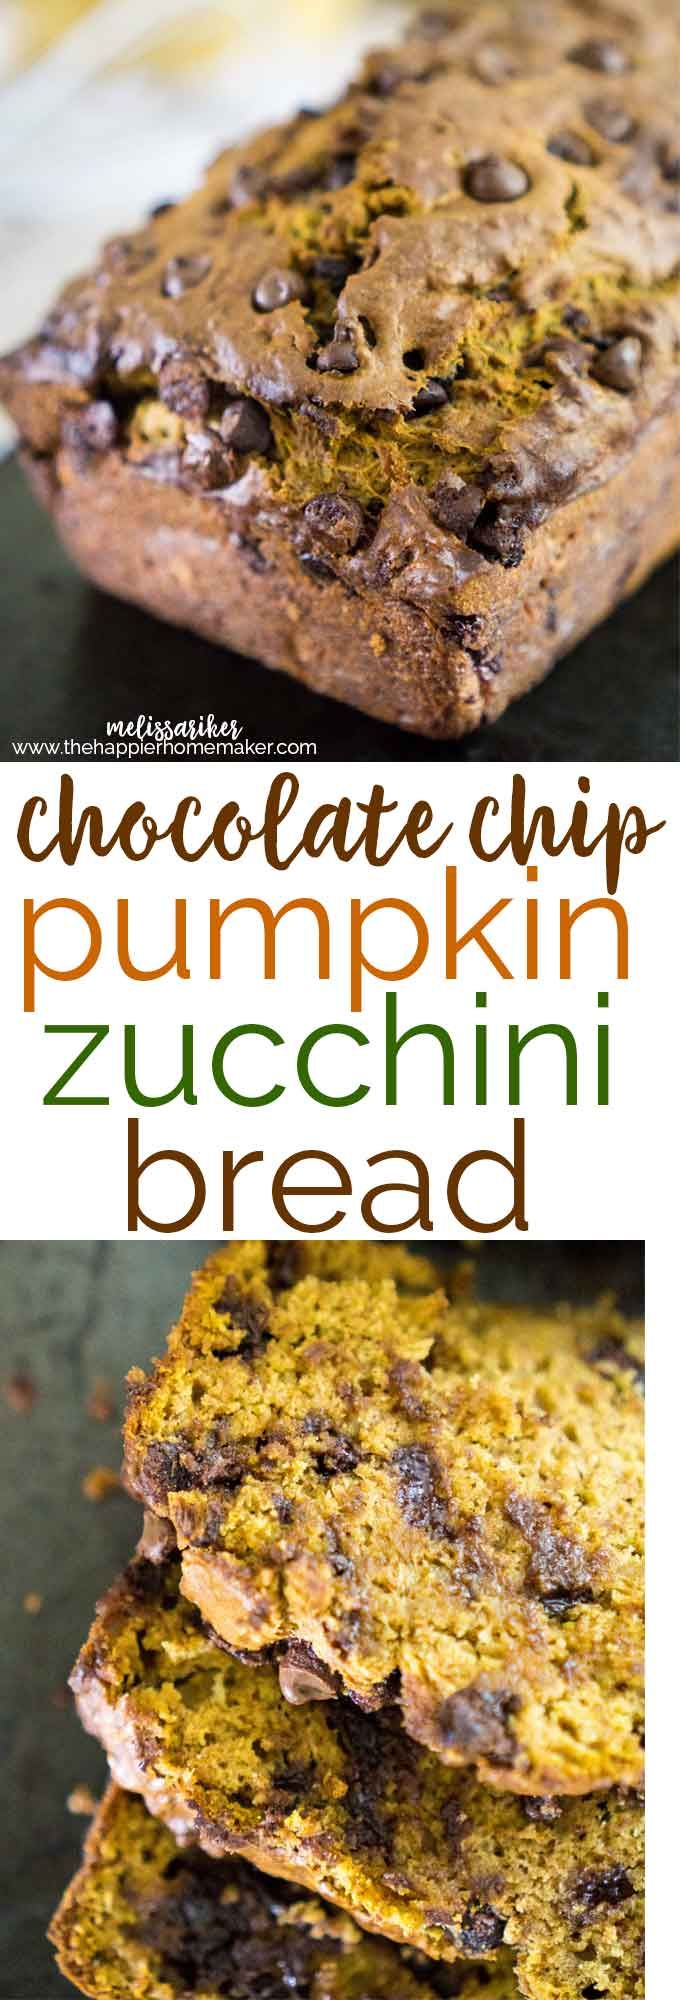 Moist, delicious Chocolate Chip Pumpkin Zucchini Bread recipe that's perfect for fall.